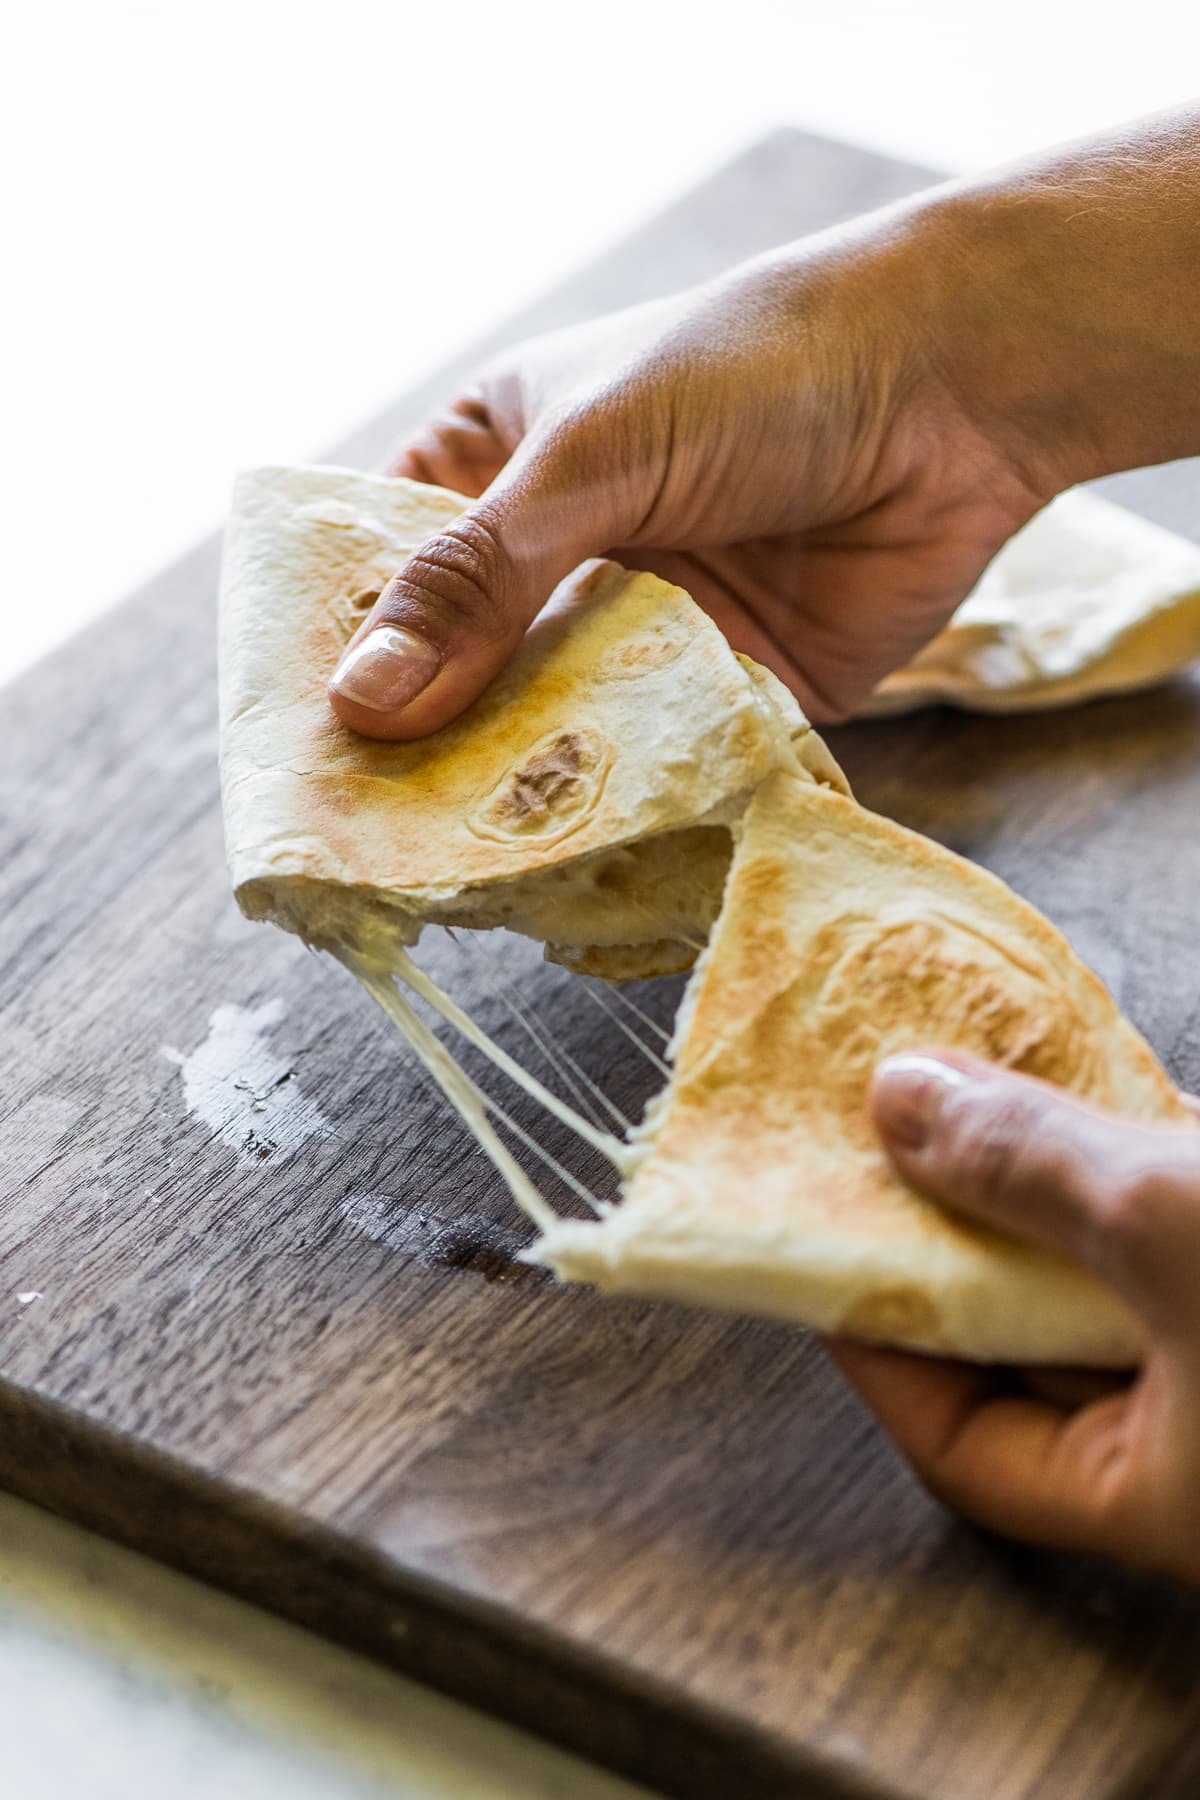 A cheese quesadilla being pulled apart, revealing melted stretchy cheese.